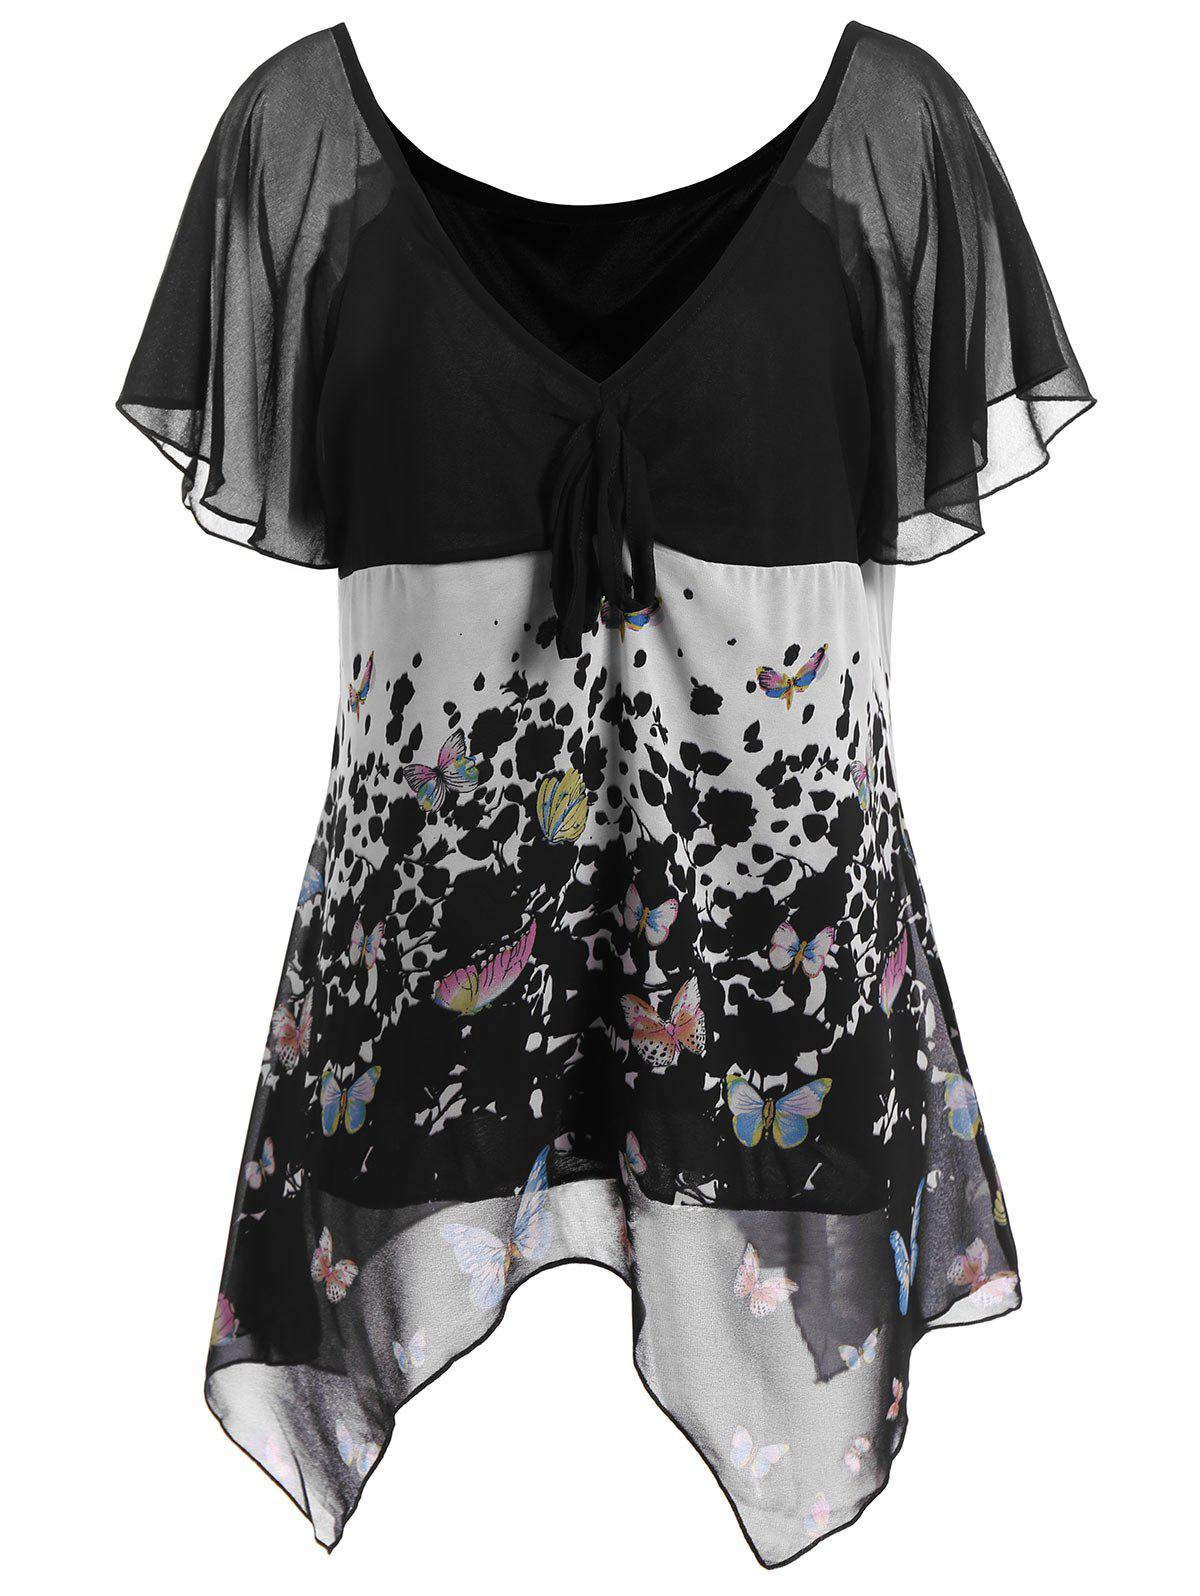 Butterfly Print Chiffon Plus Size Top - BLACK XL